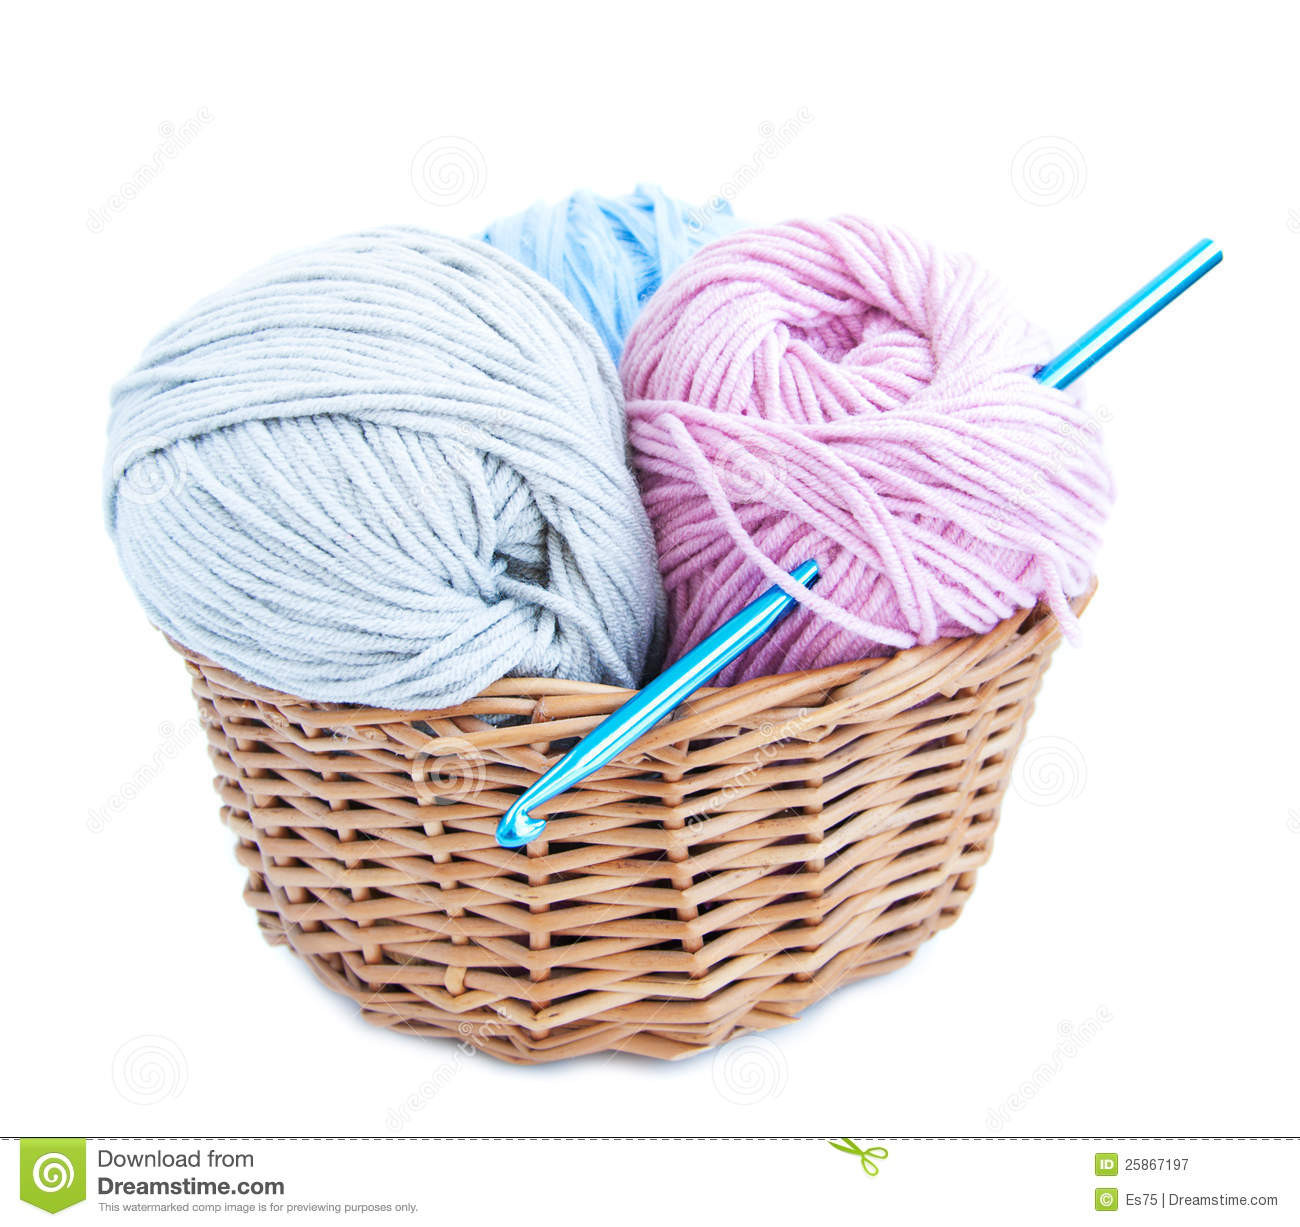 Lovely Crochet Hook and Yarn Stock Image Image Of White Basket where to Buy Crochet Hooks Of Marvelous 50 Pictures where to Buy Crochet Hooks